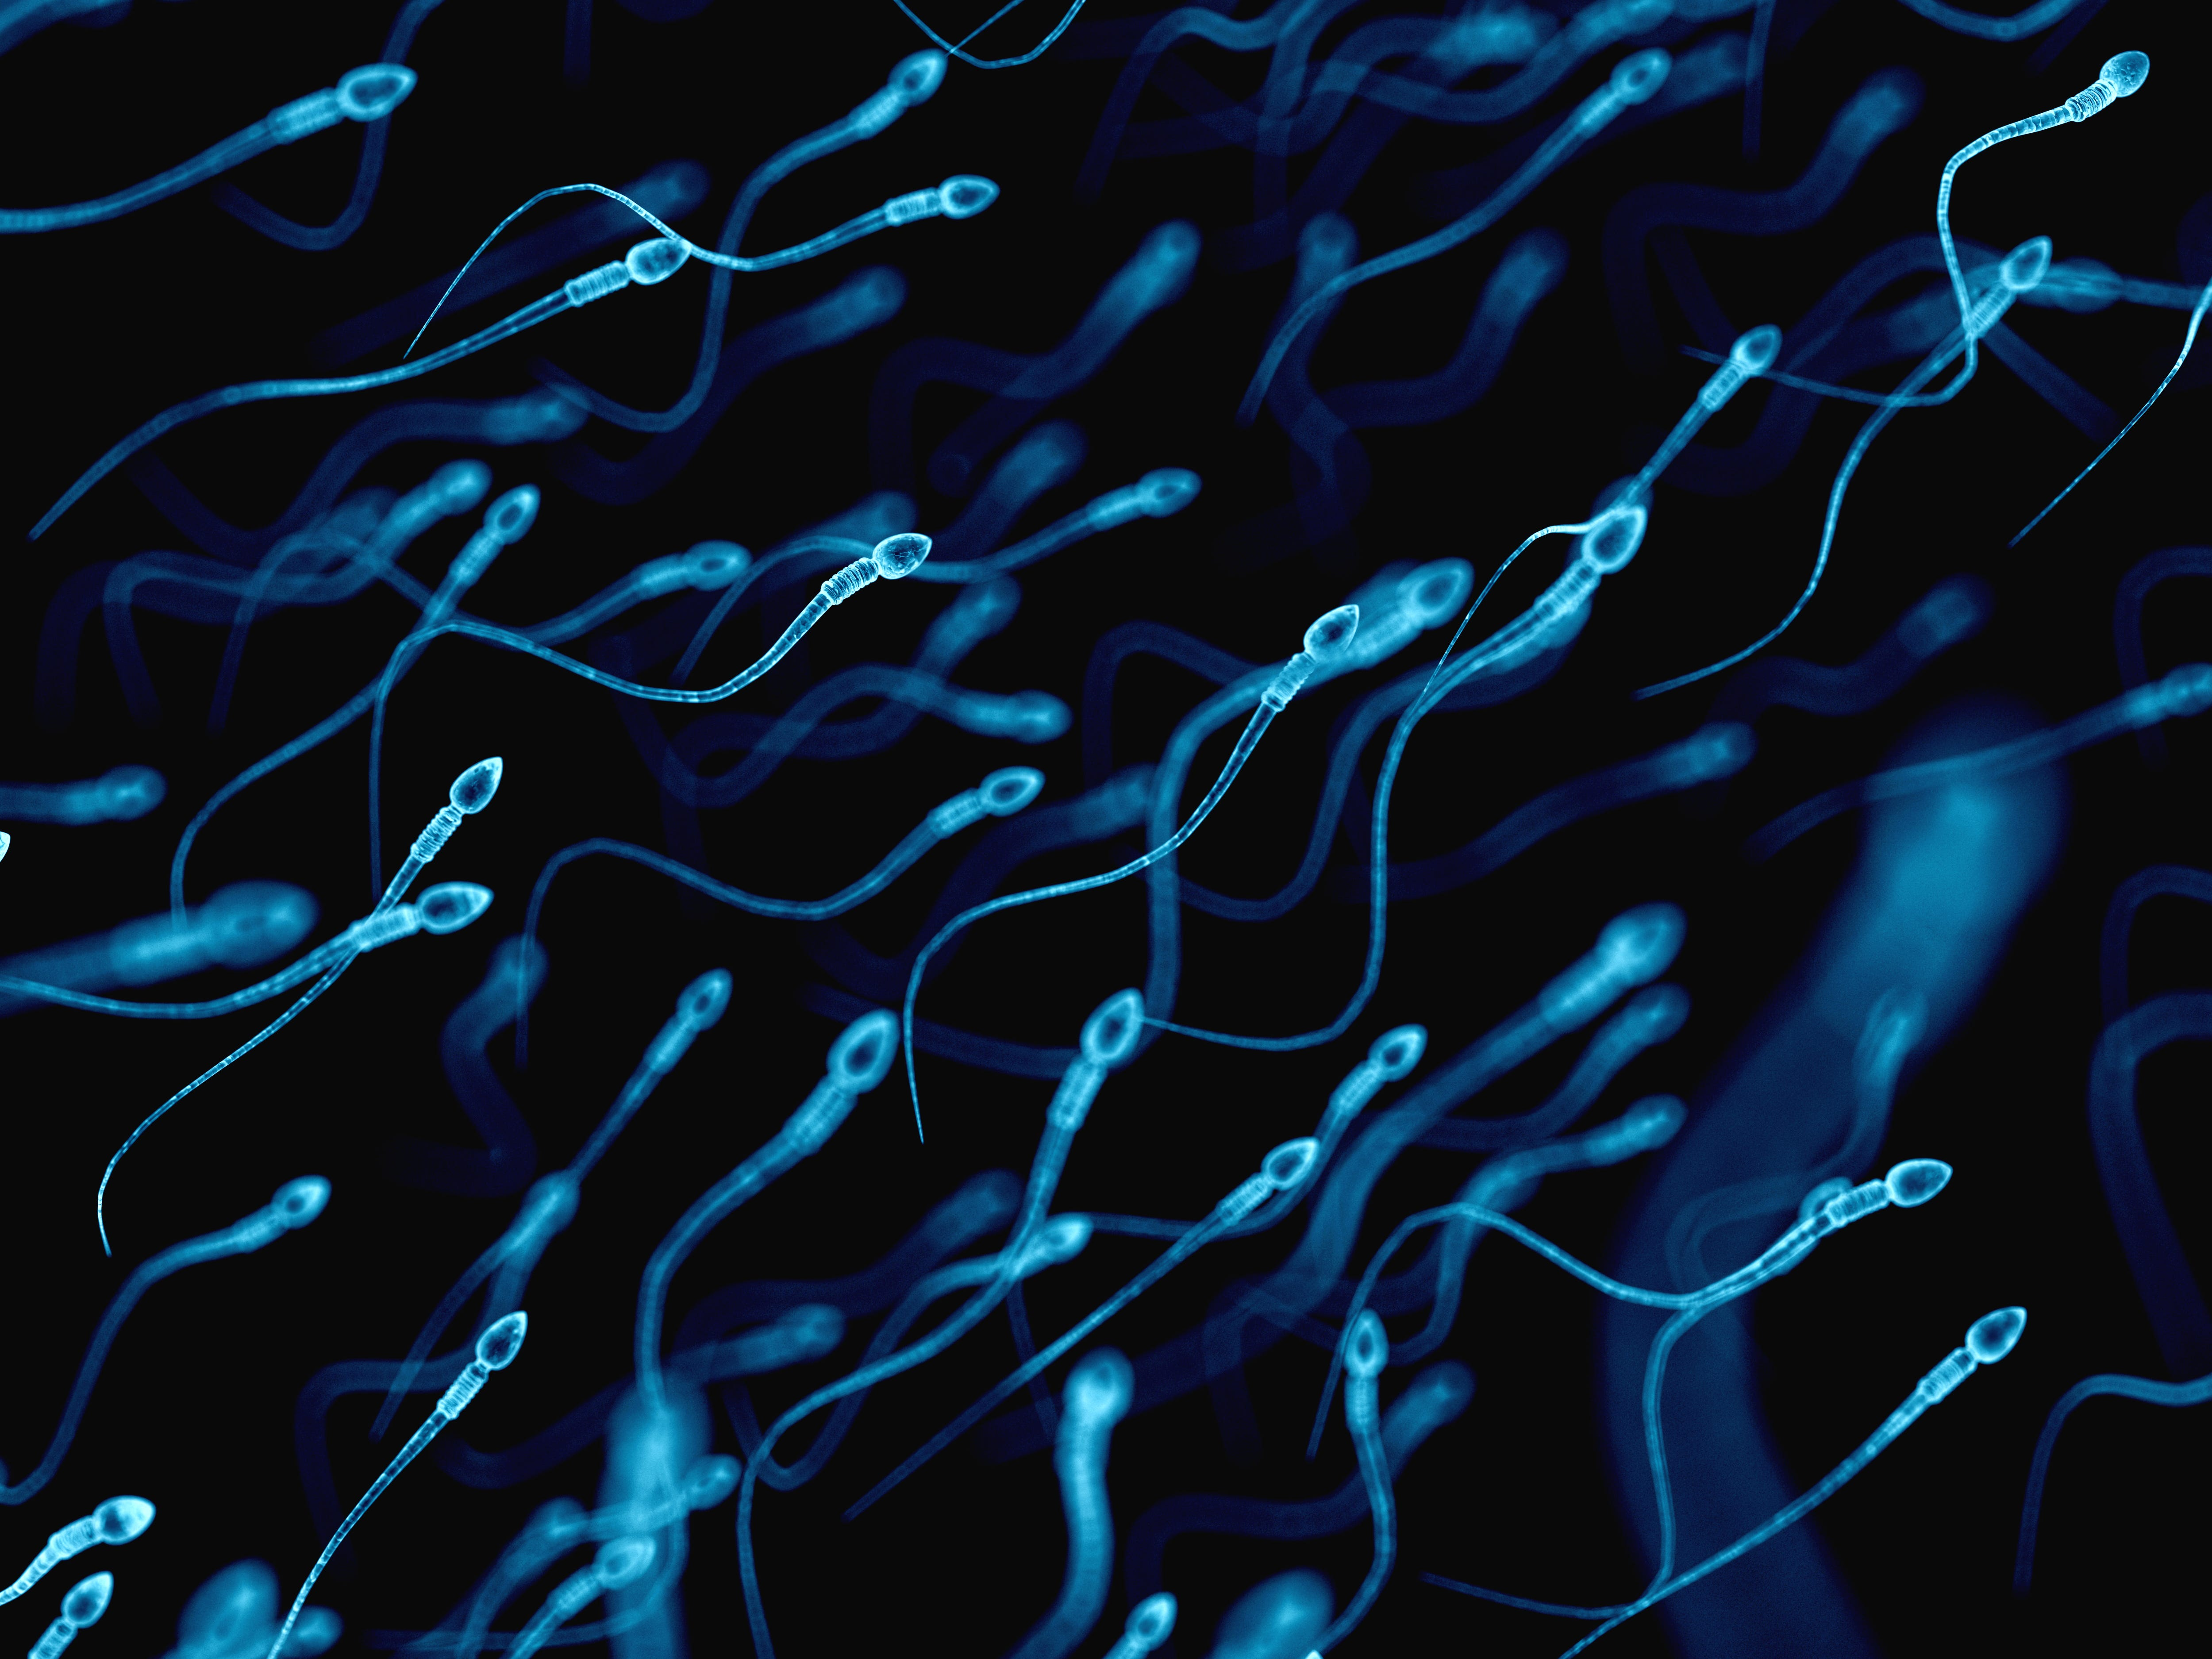 Sperm don't like heat, so climate change could damage male fertility, study says